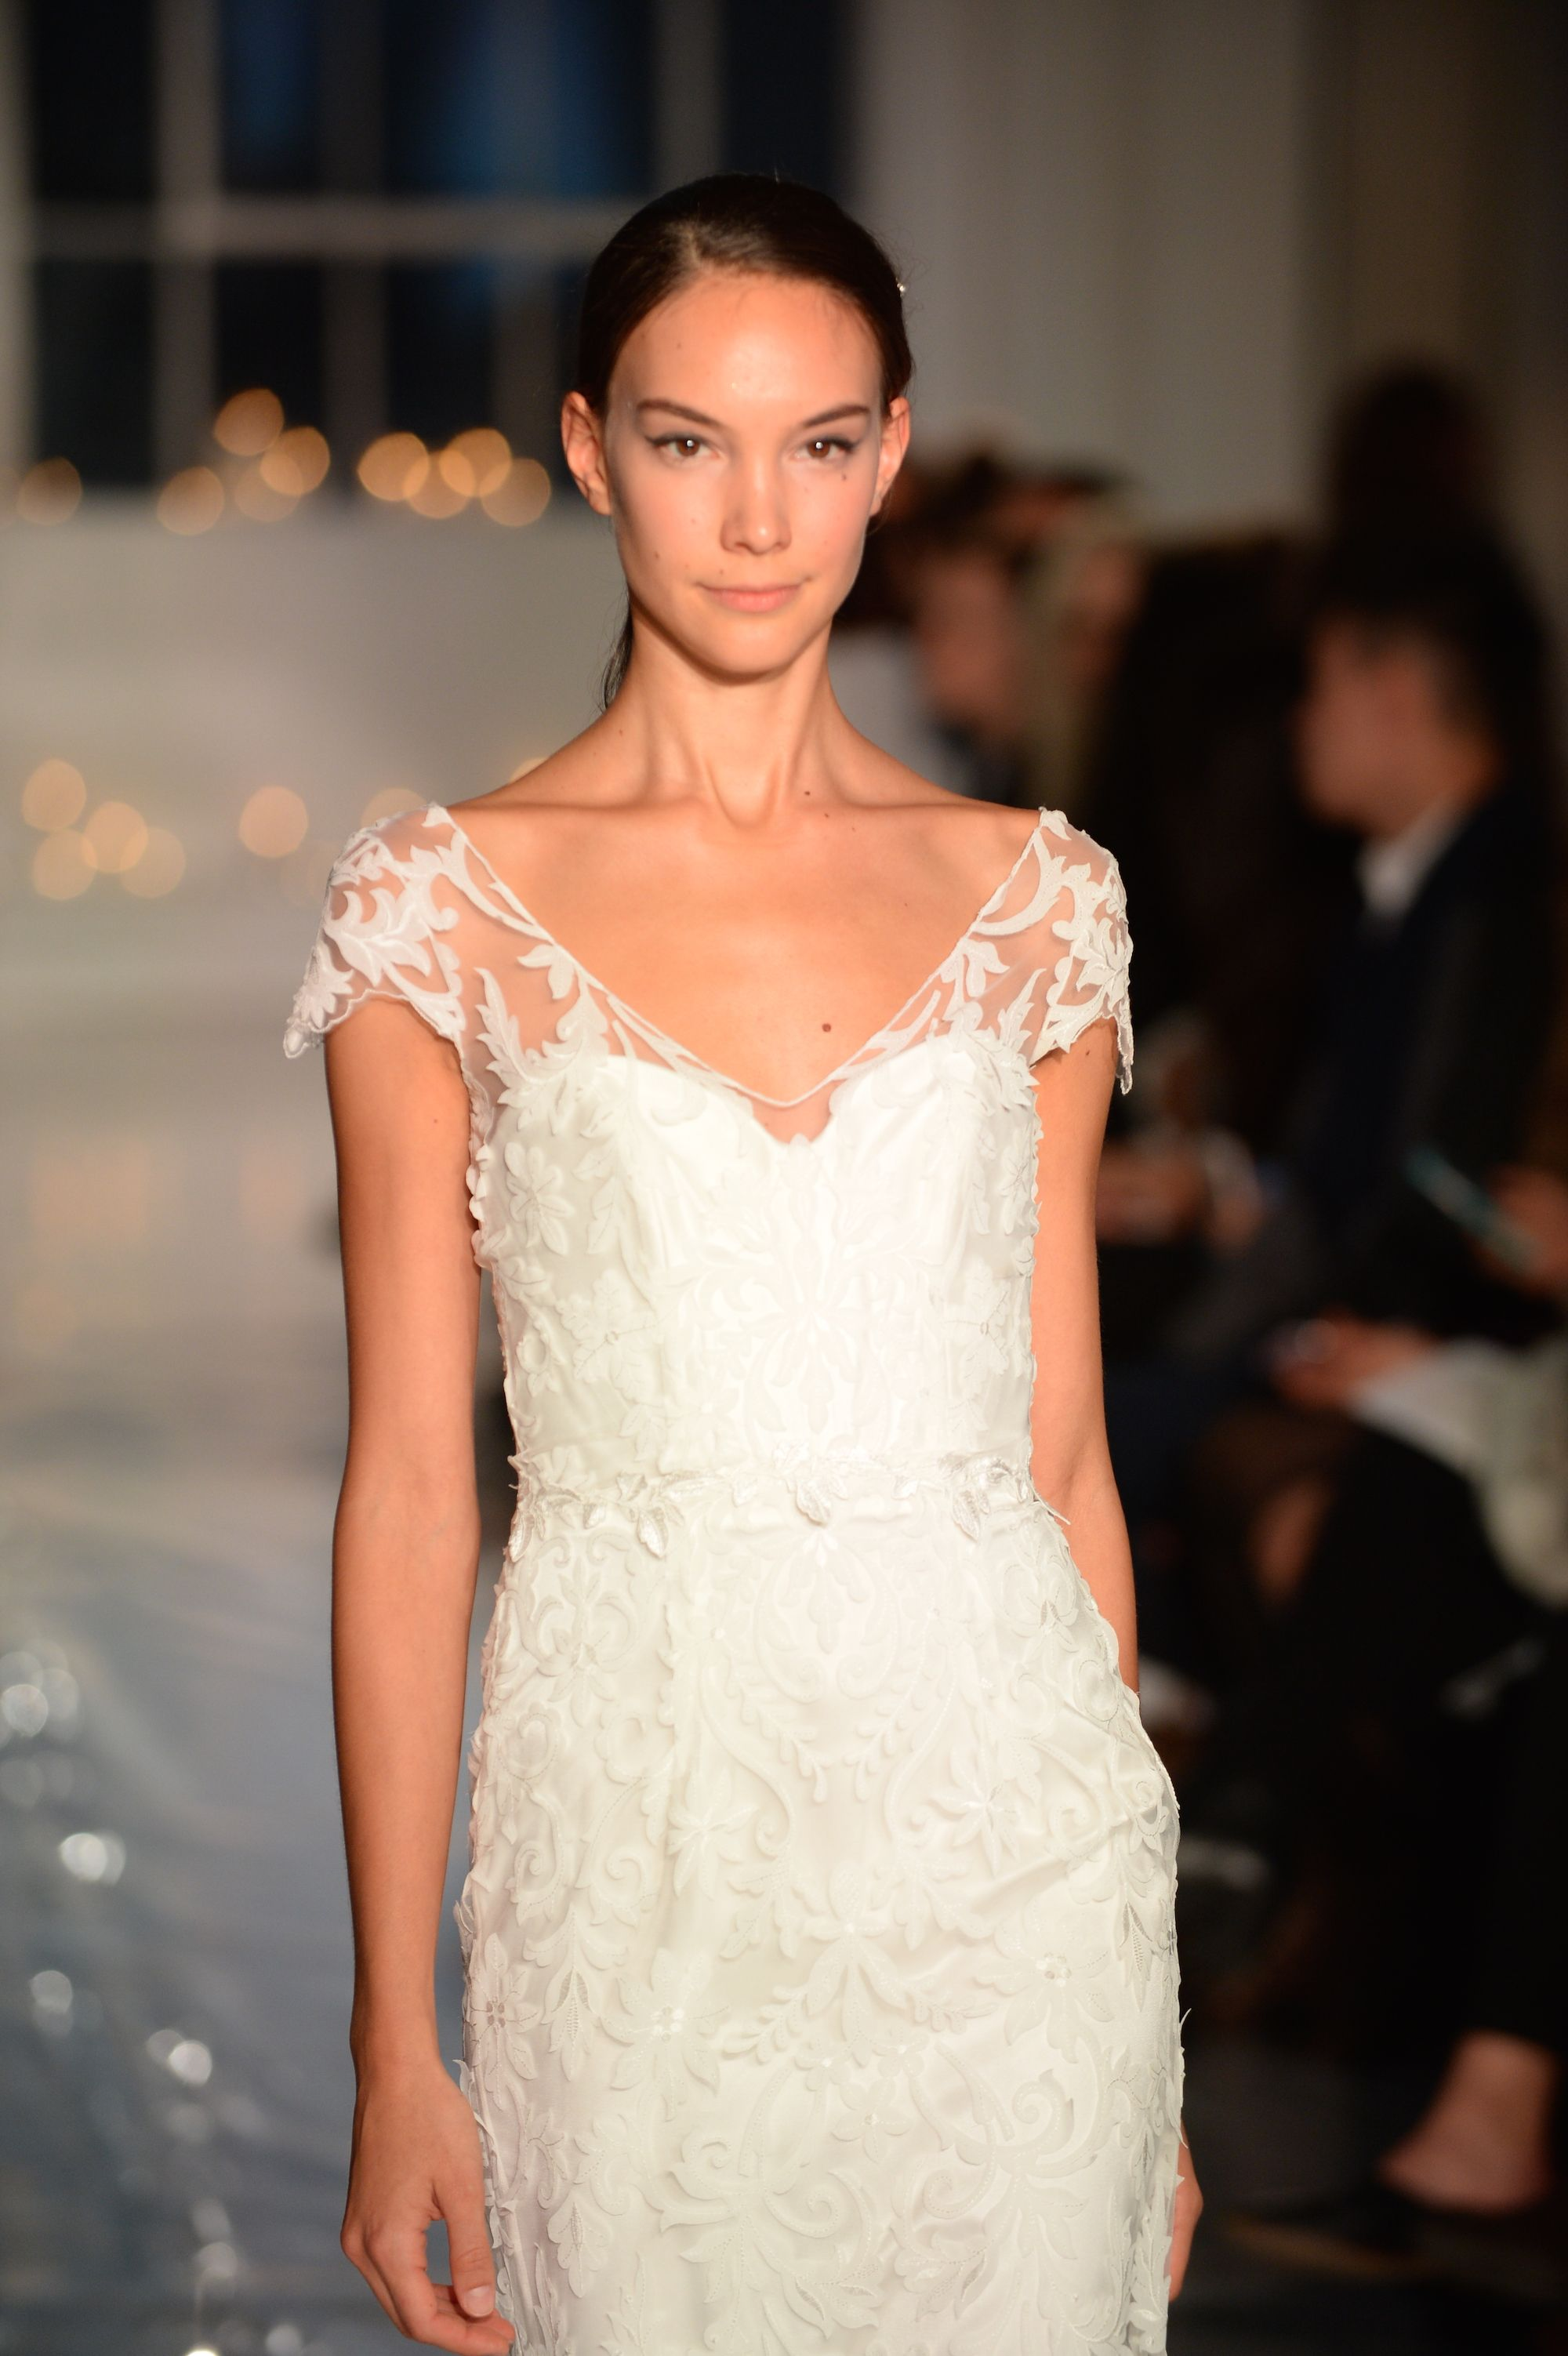 NYBW One Fine Day Runway | Anna Campbell | Windsor Dress | Laser cut botanical lace wedding dress